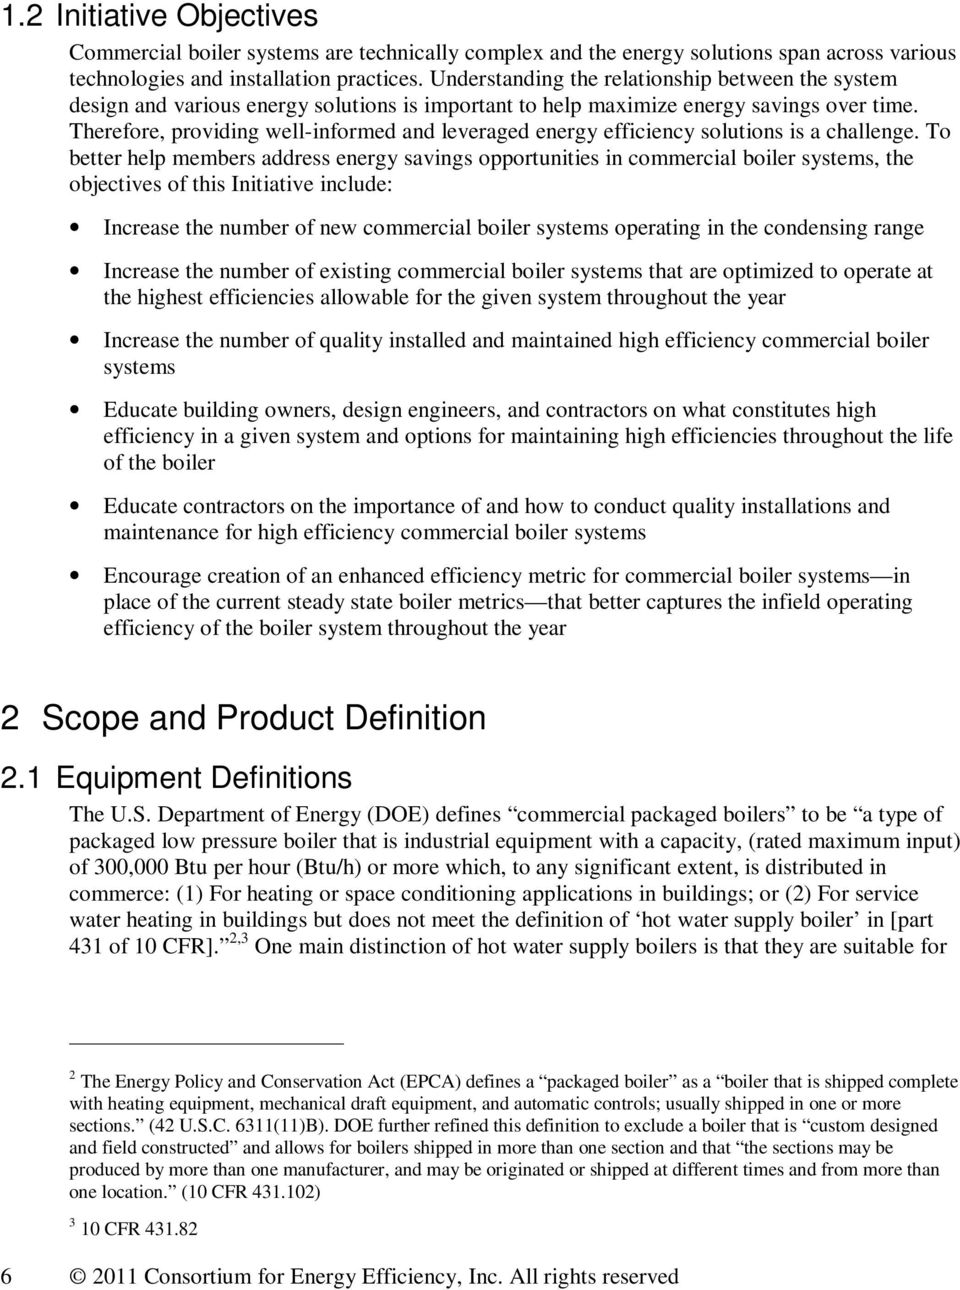 High Efficiency Commercial Boiler Systems Initiative Description - PDF